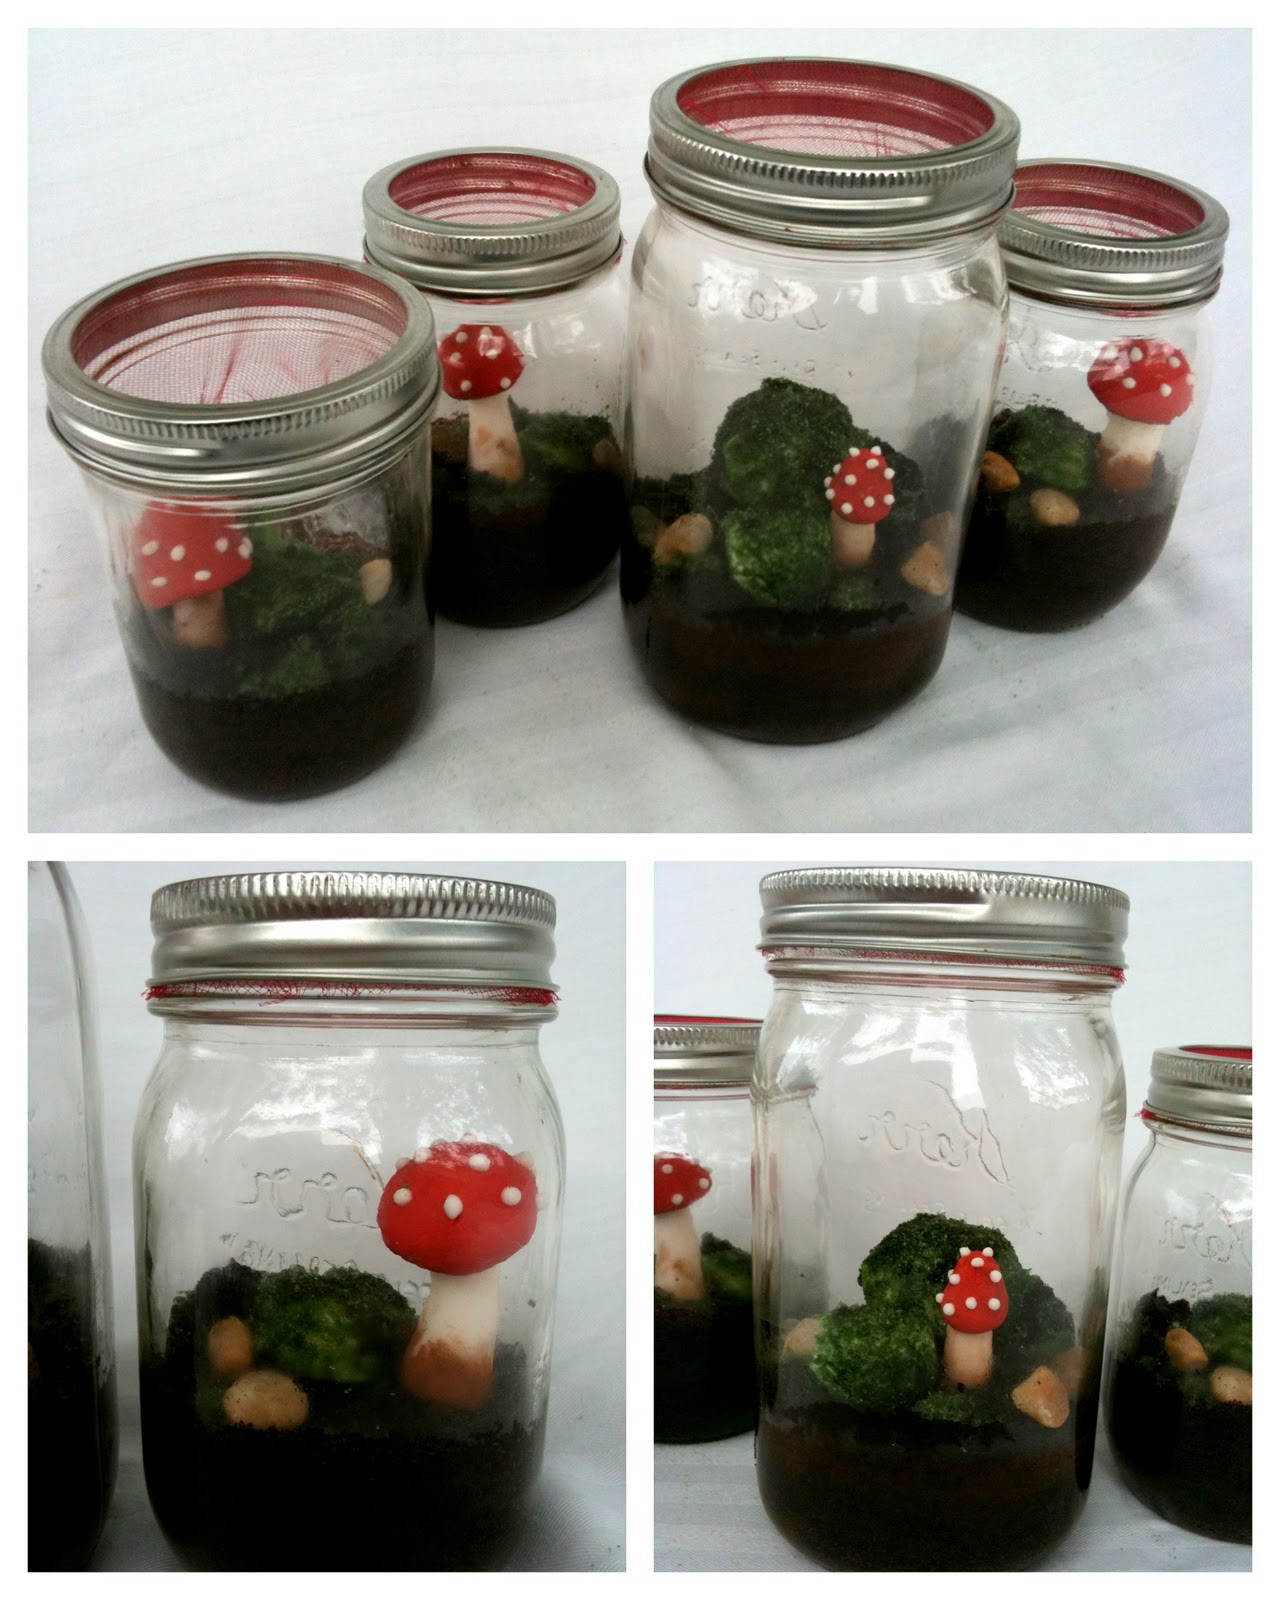 Terrarium Cakes  Whimsical Woodland Scenes In A Jar (that You Can Eat!)